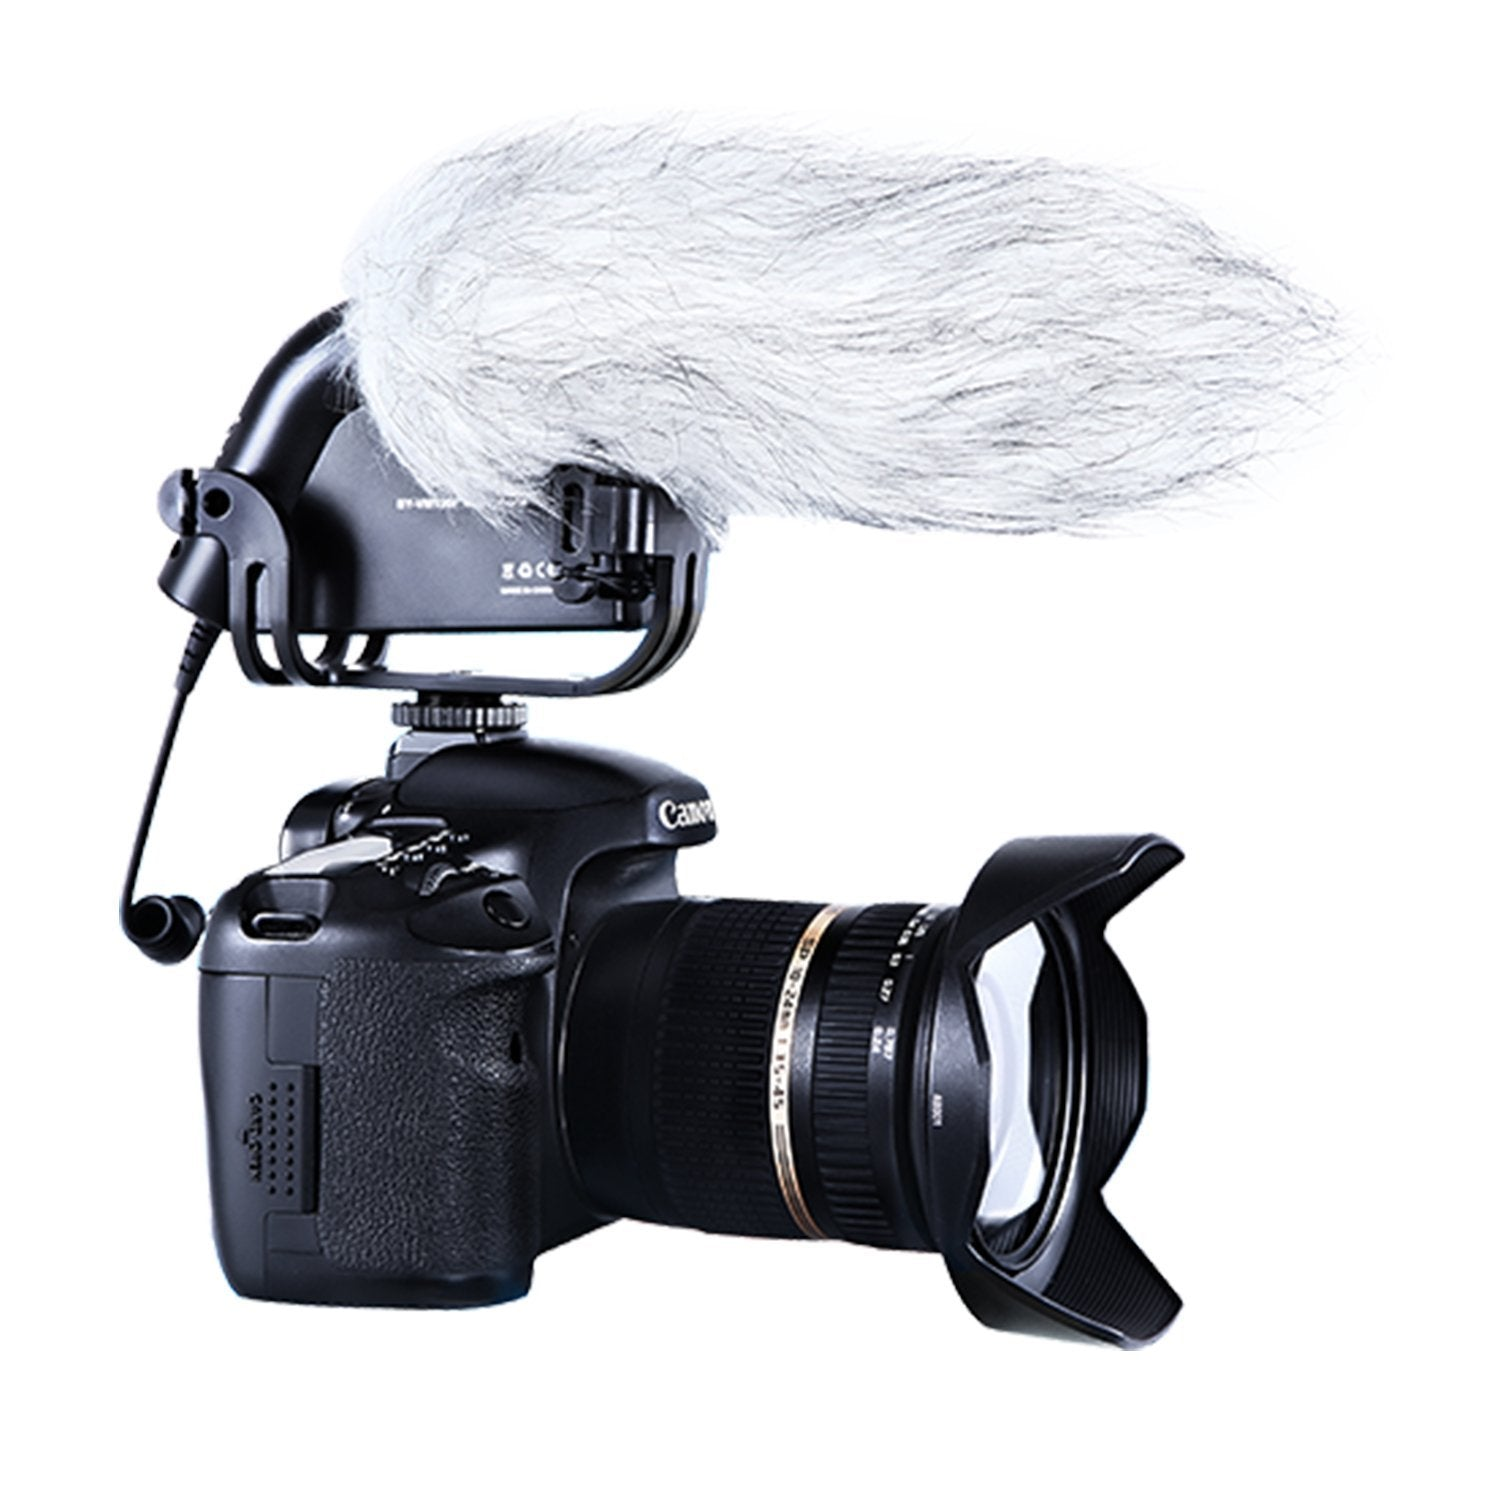 BOYA BY-VM190P Shotgun Video Condenser Microphone for DSLR Video Cameras DV with Suspension Mount 2-Step High Pass Filter and 3-Stage Audio Level Controls